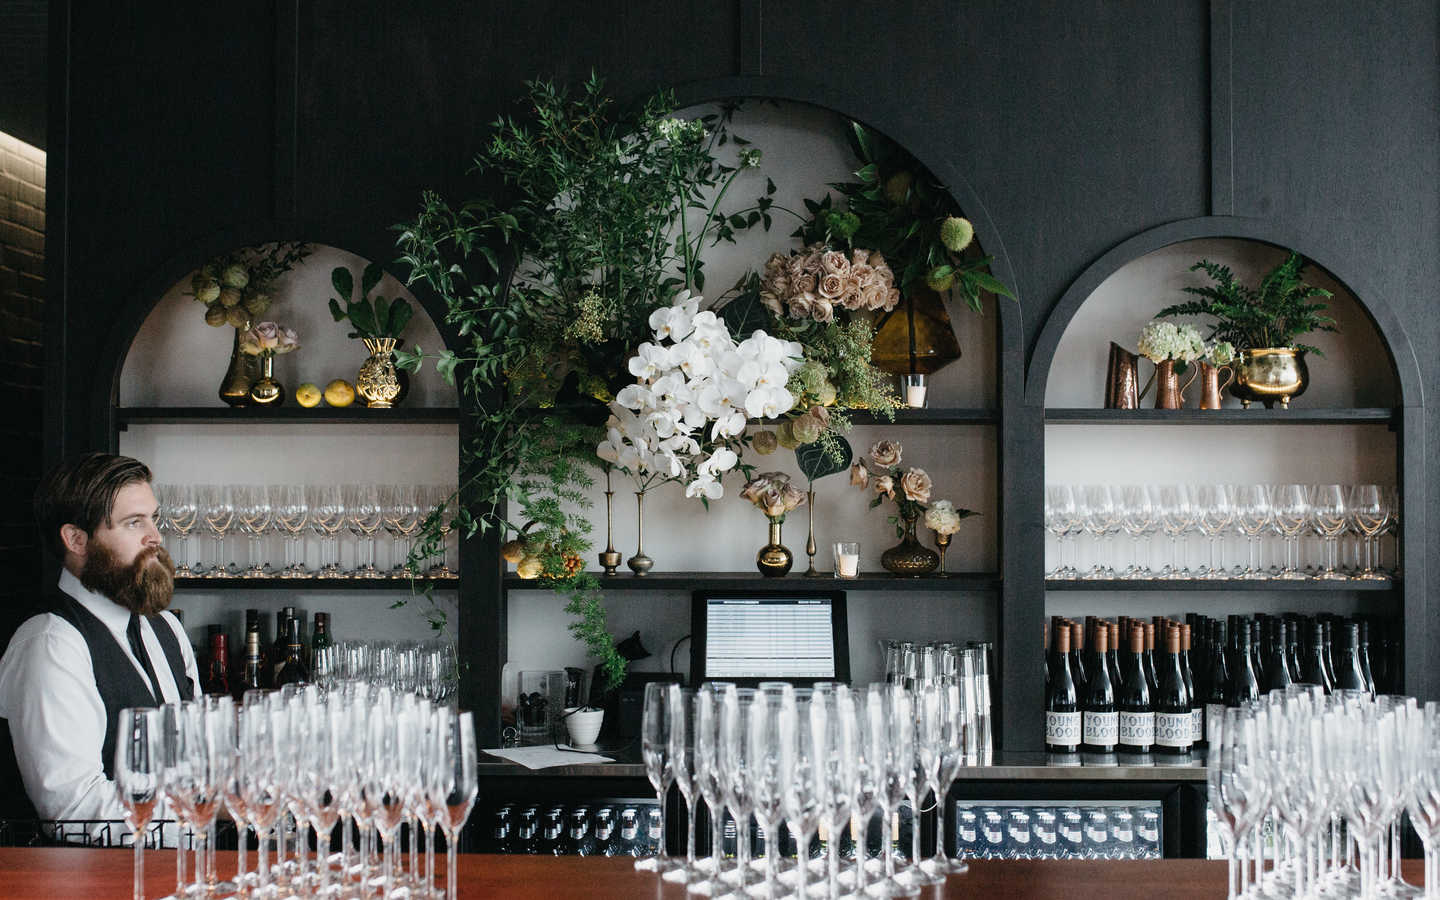 Guildhall Event Space Bar In North Fremantle Wa Venue Menu